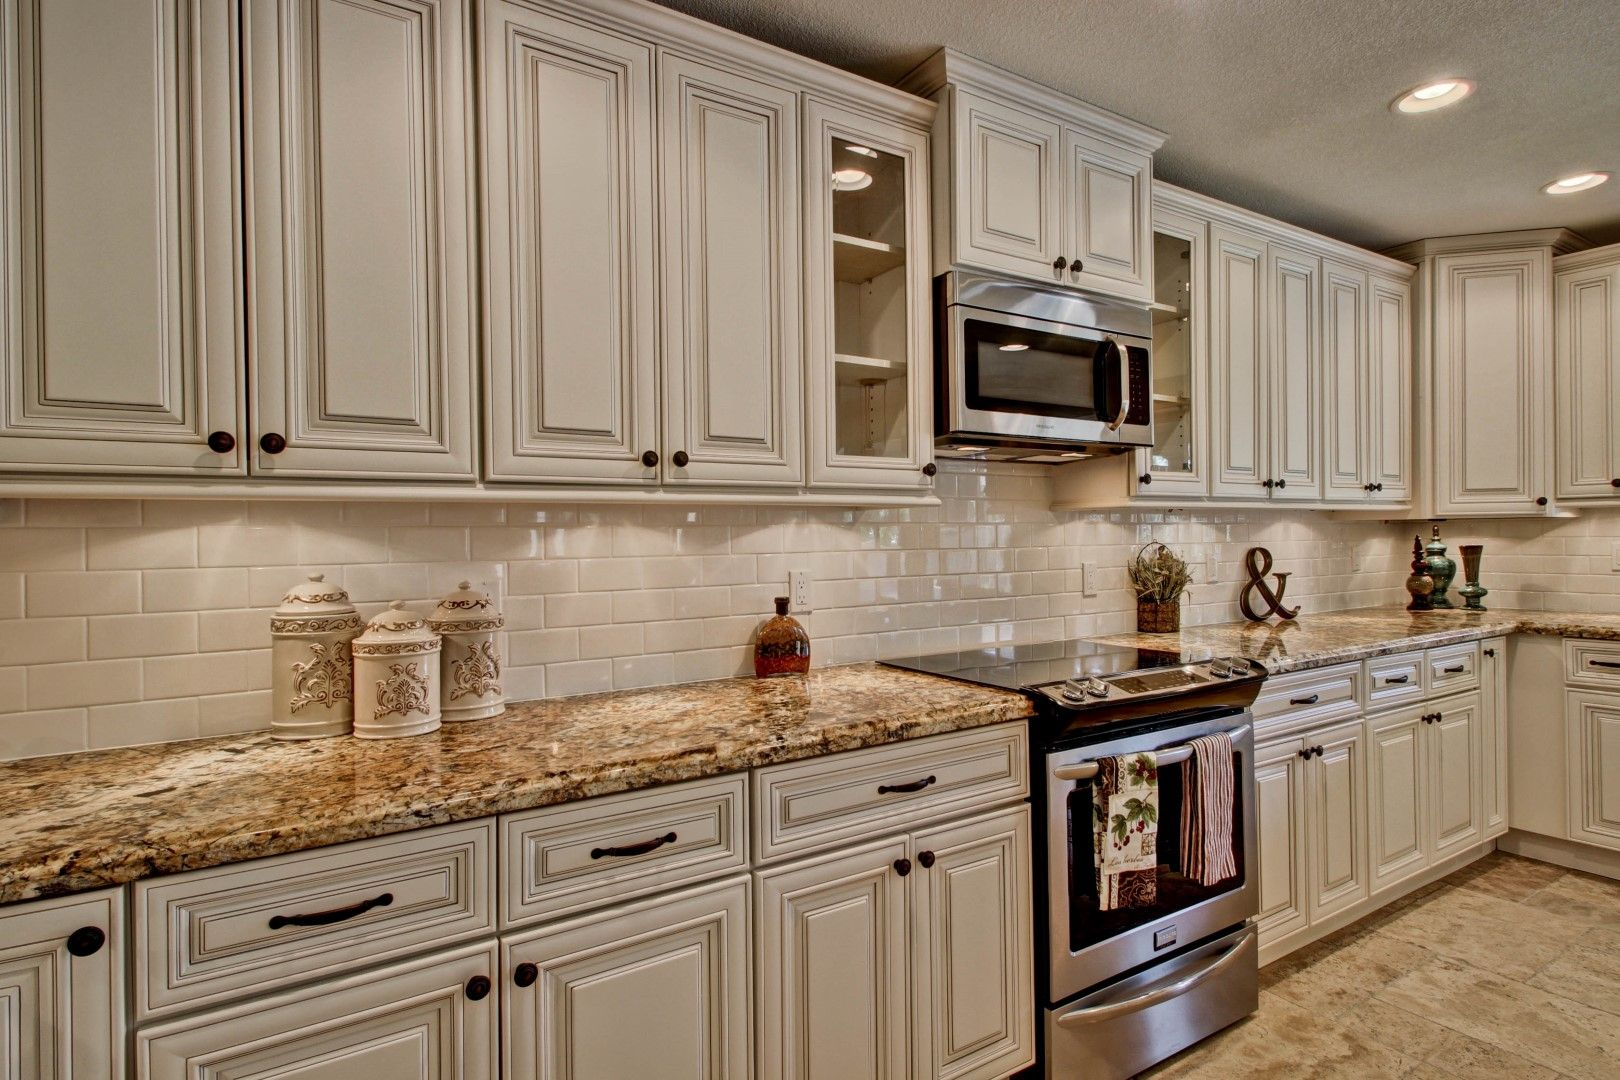 Huge Kitchen Is An Entertaining Chefs Dream Expansive Mascarello Granite Island Gorgeous C Antique White Kitchen Best Kitchen Cabinets Kitchen Cabinet Colors